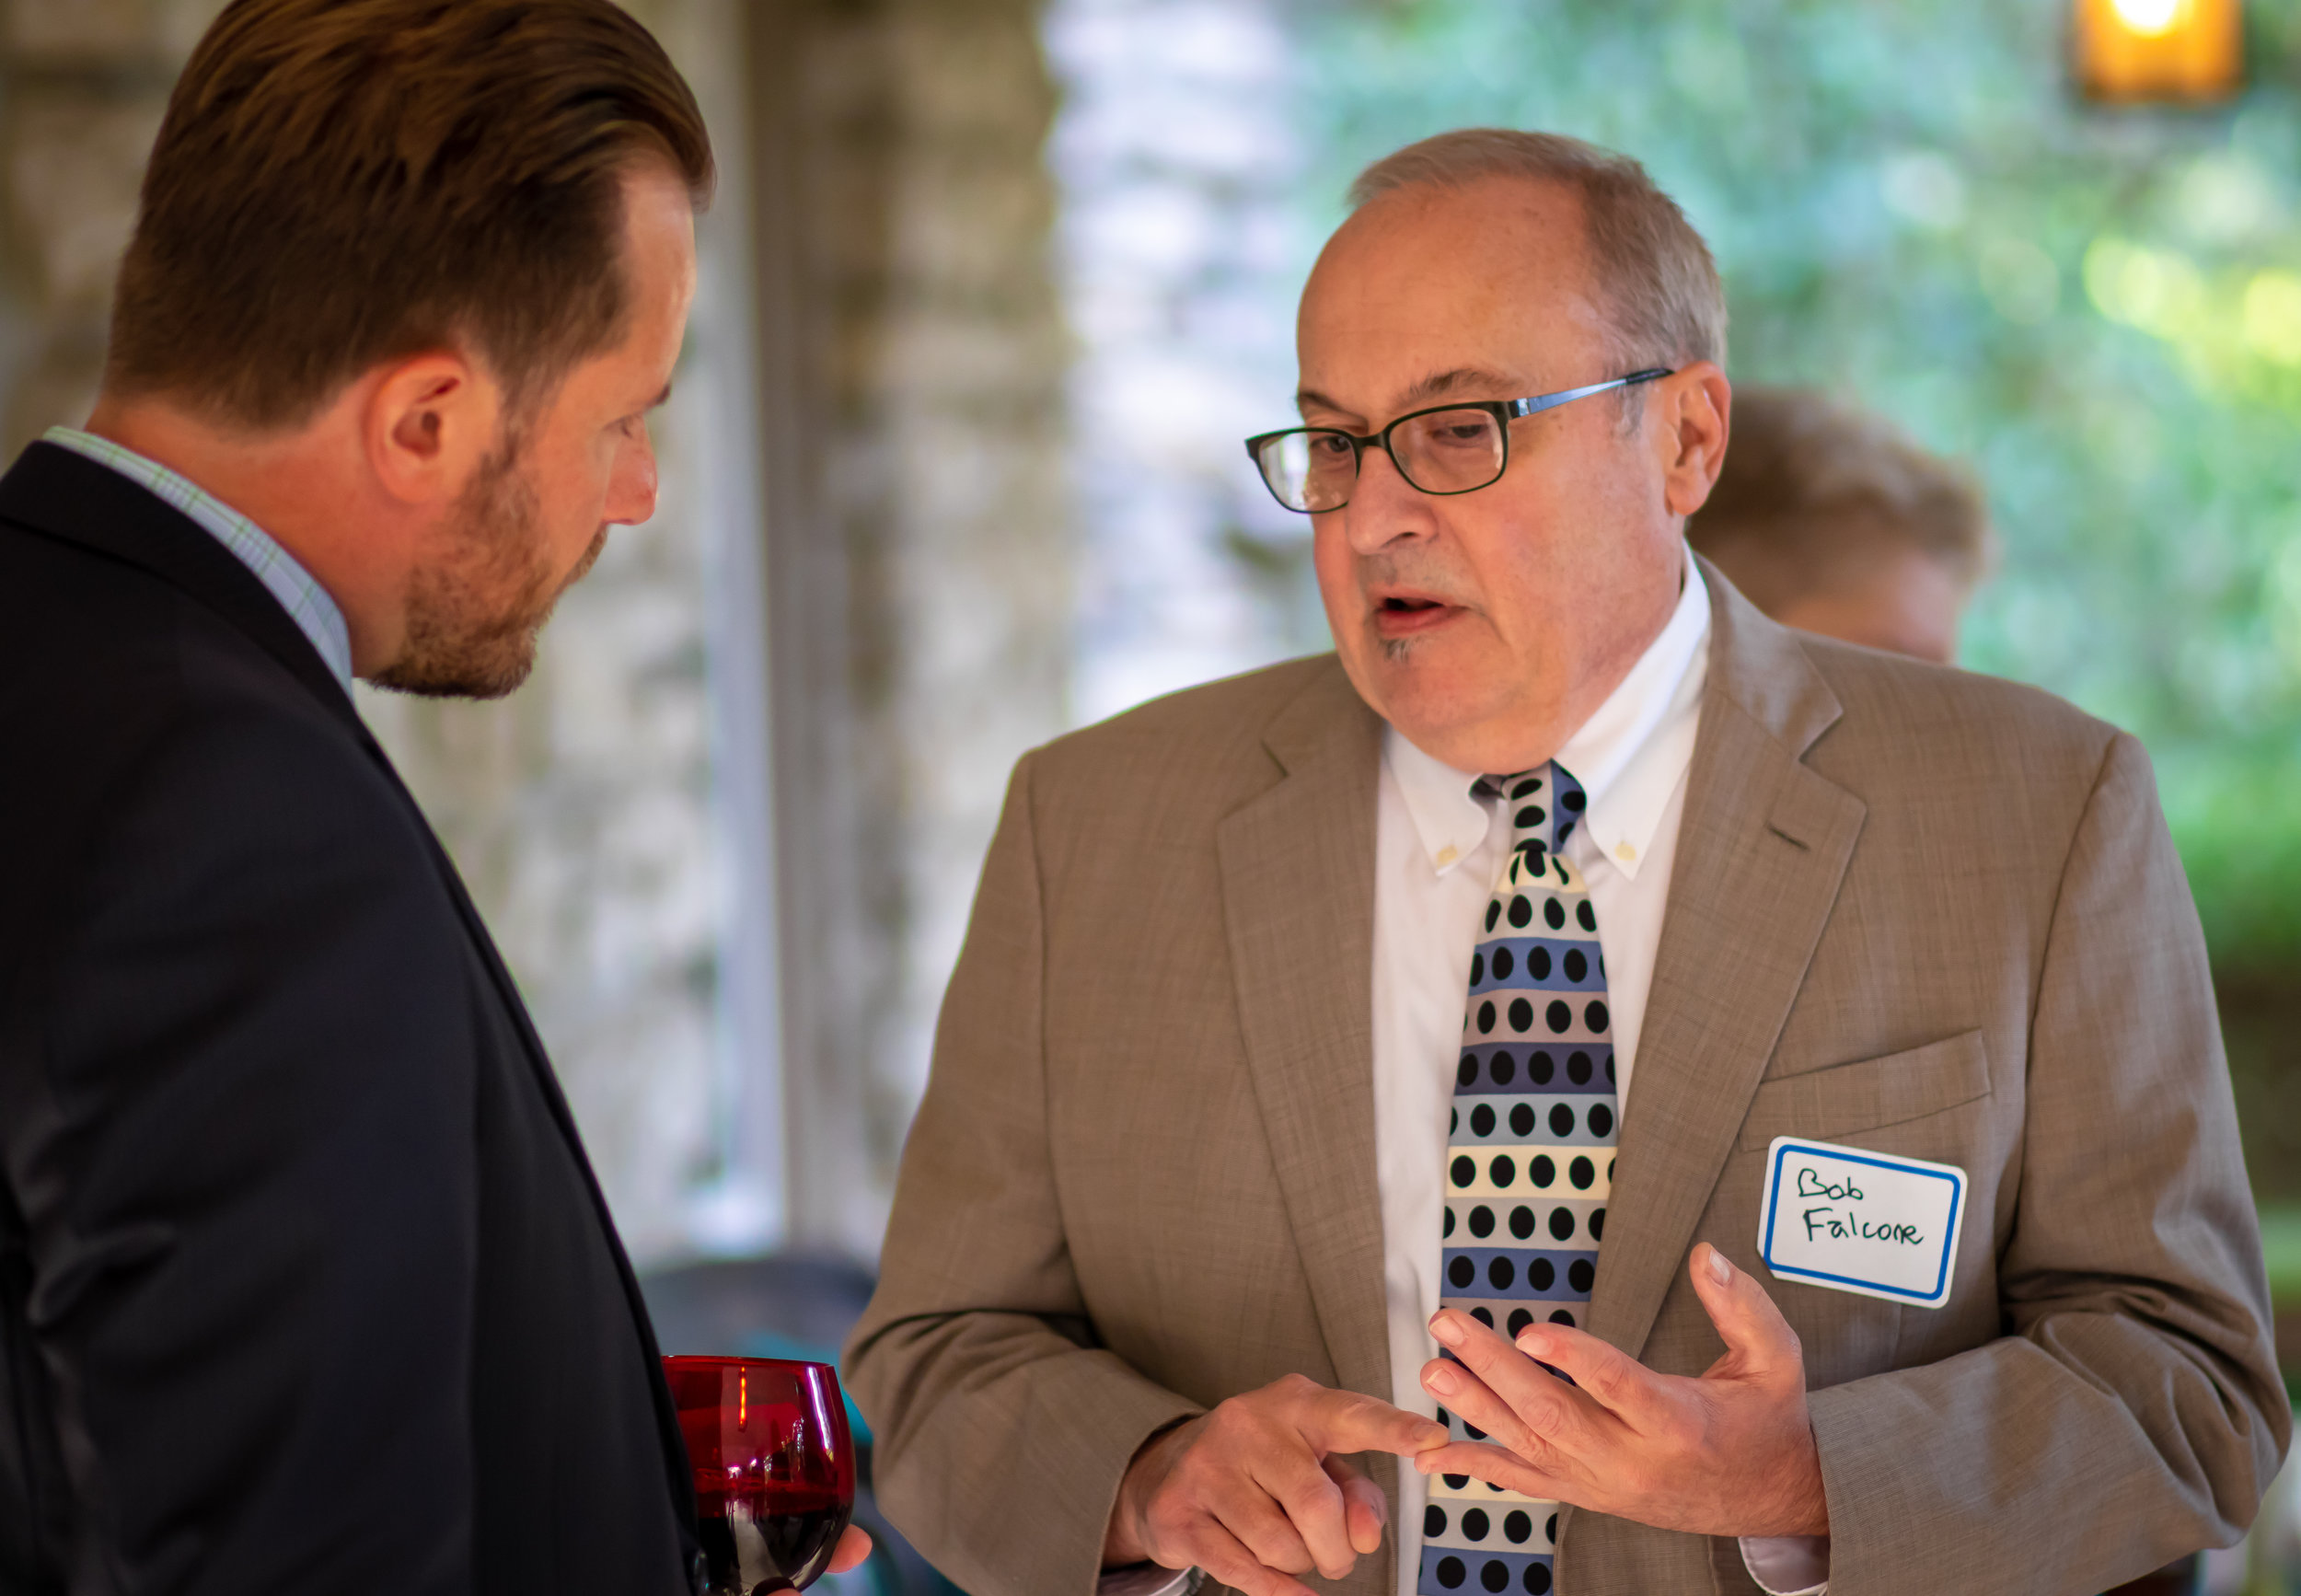 Rep. Rick Carfagna (left) speaks with Dr. Robert Falcone (right), CEO of the CMA